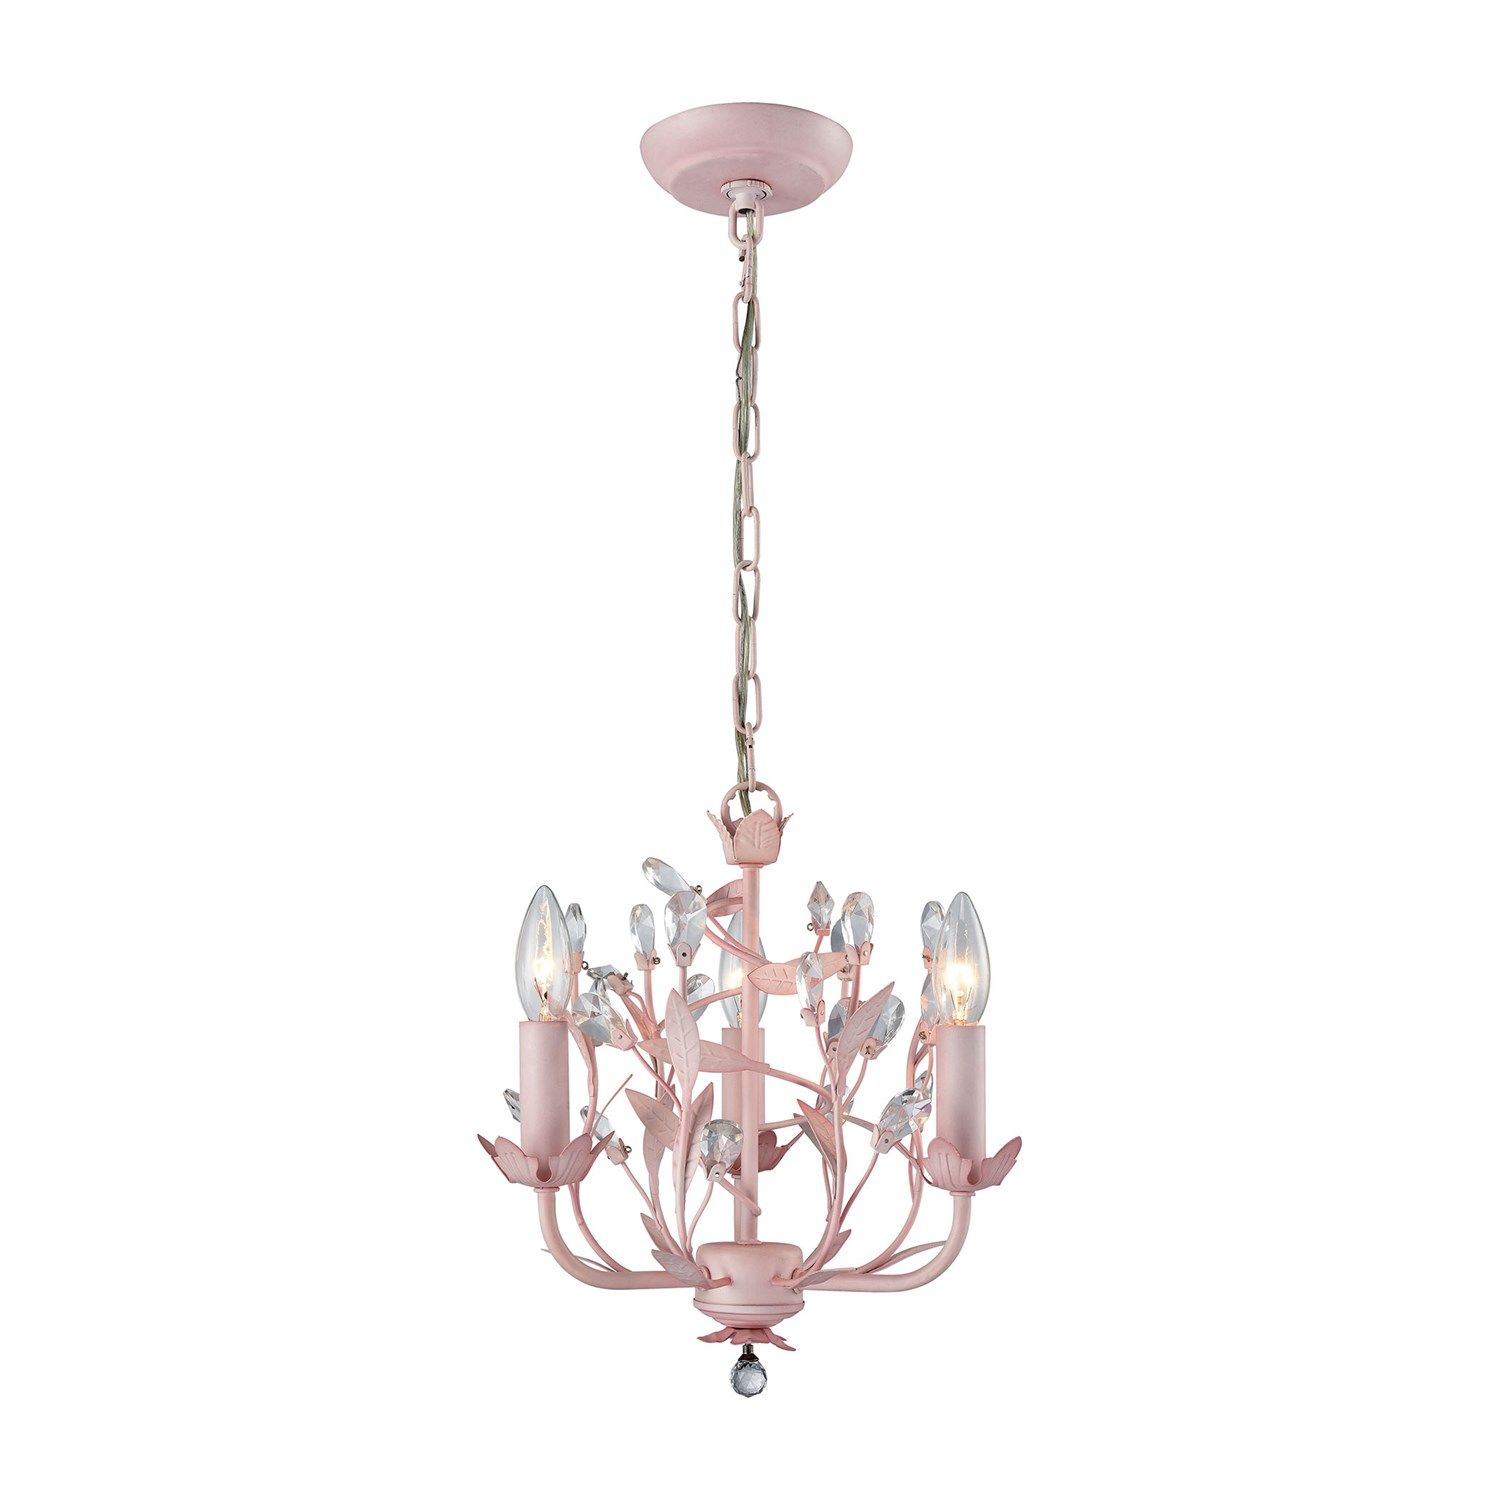 Elk Lighting 18152/3 Circeo 3 Light Chandelier in Light Pink